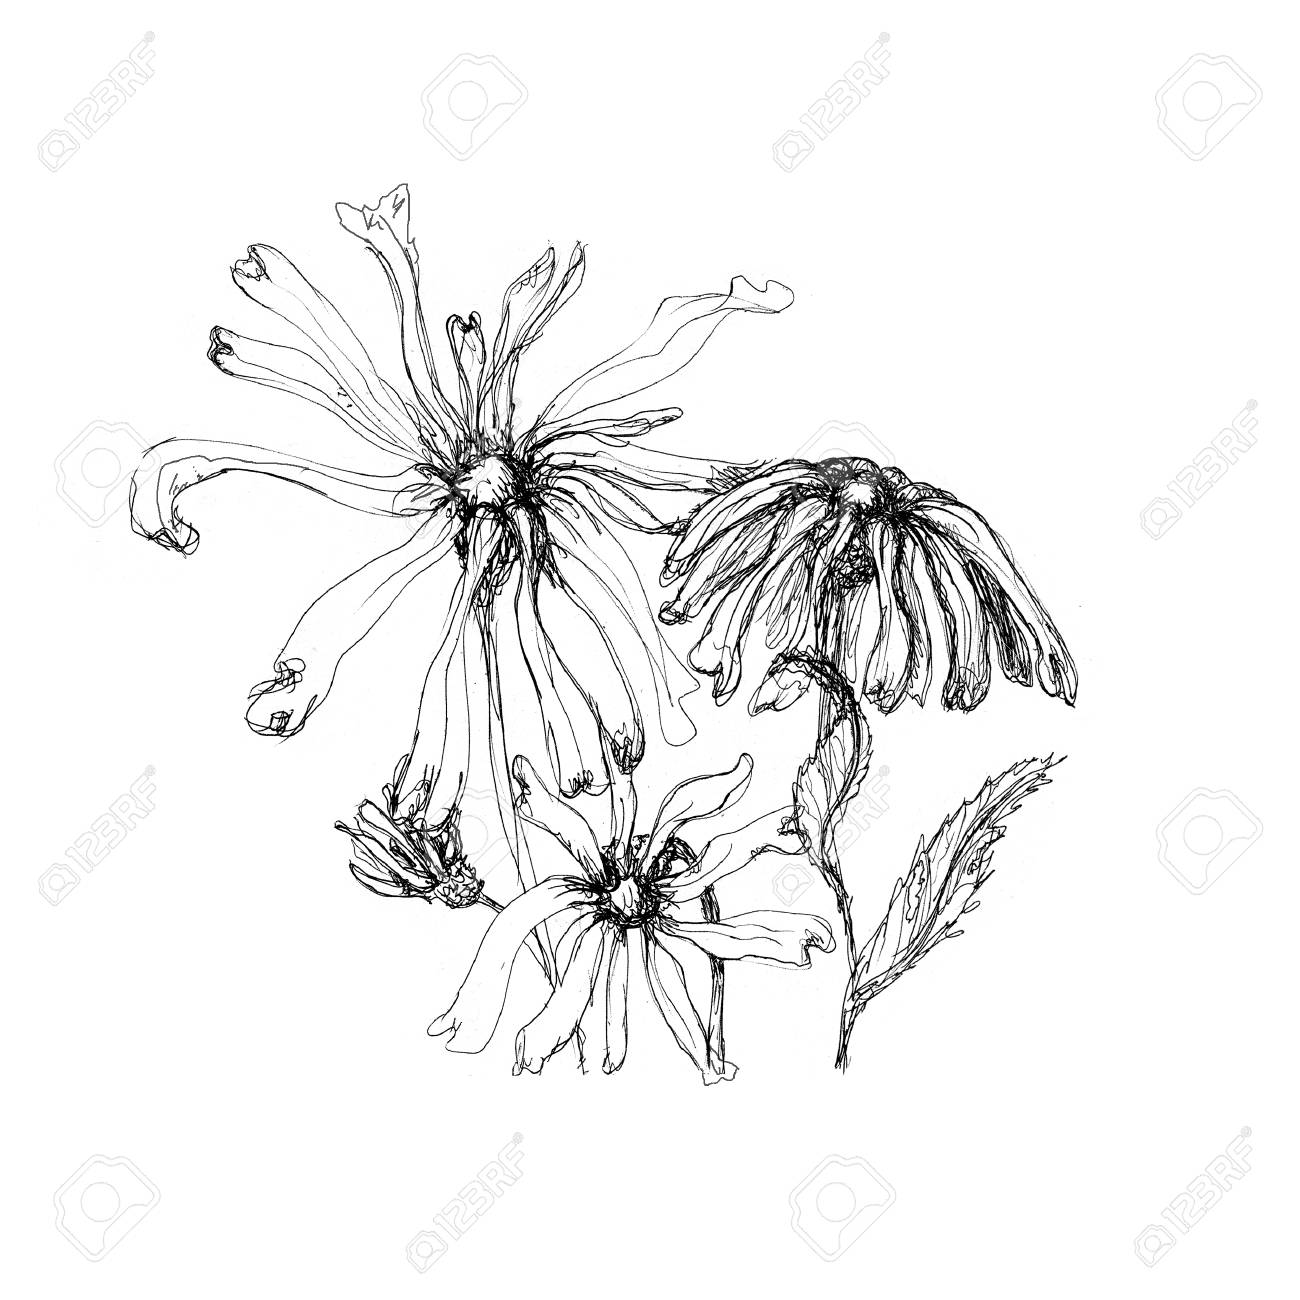 Hand Drawn Pen Ink Floral Artistic Sketch Isolated On White Stock